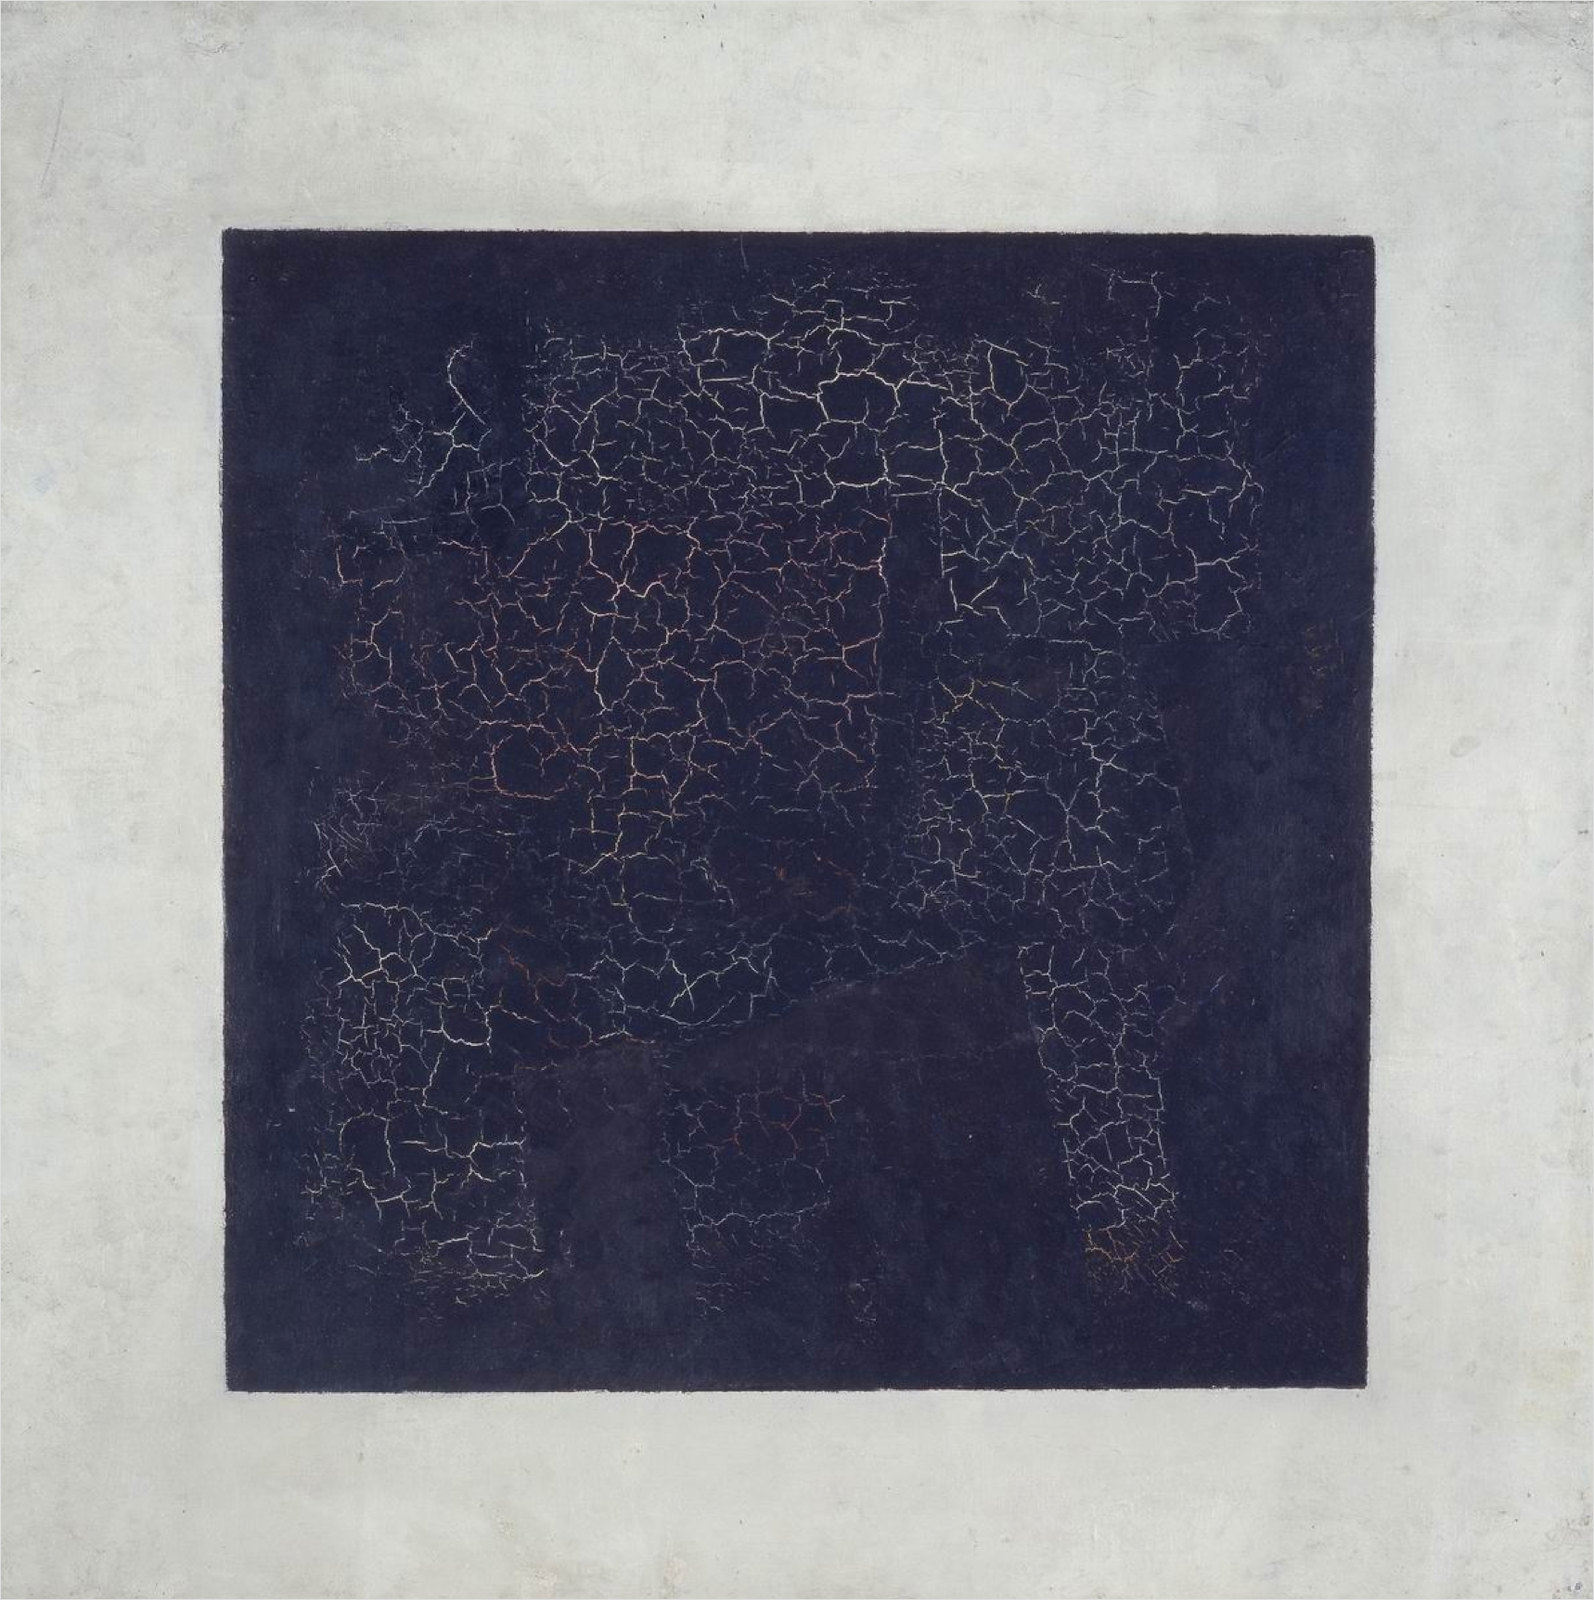 The Black Square by Kazimir Malevich, 1915